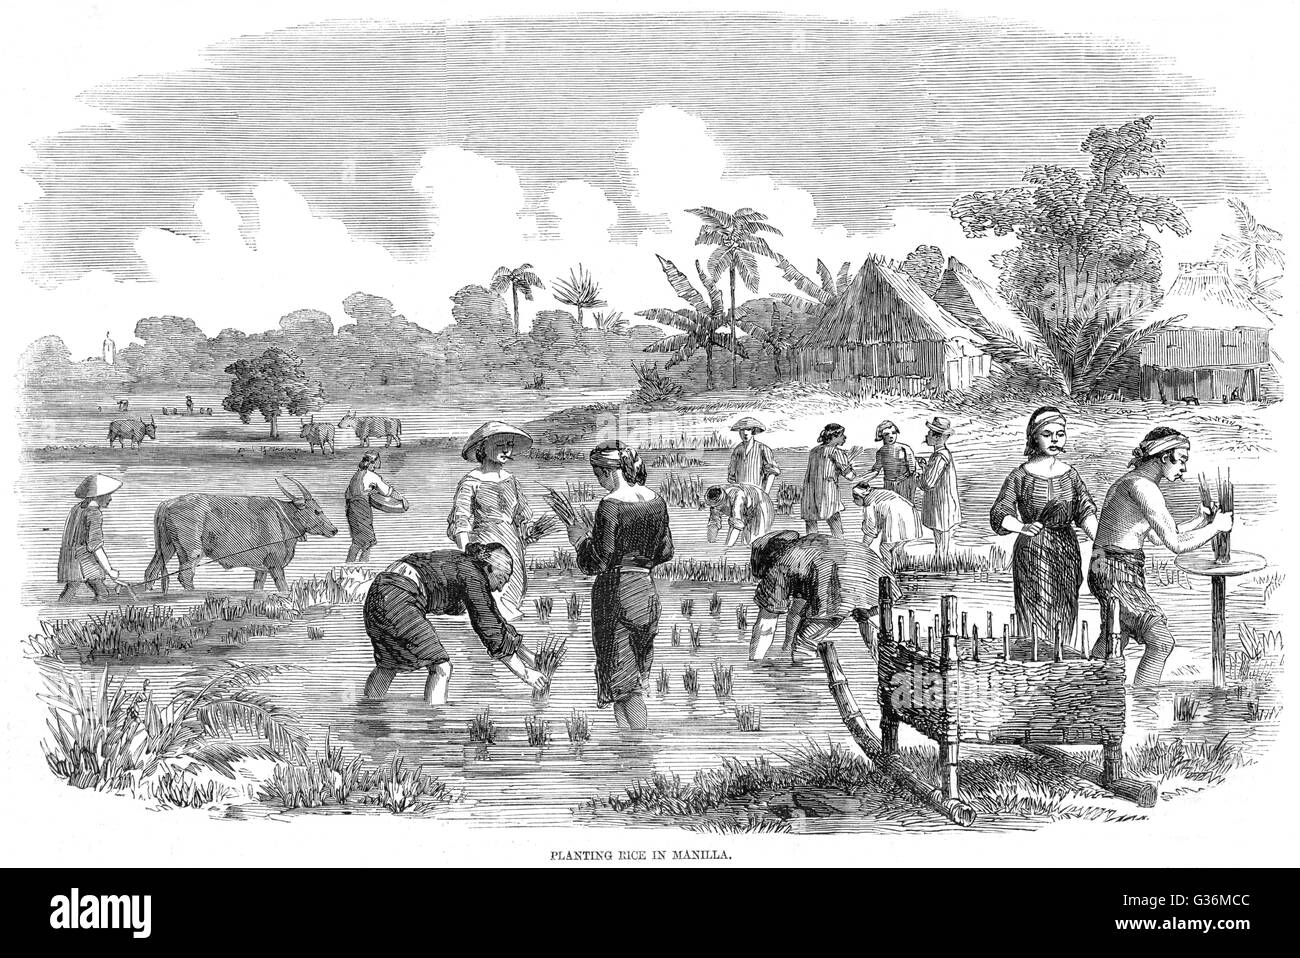 Rice cultivation in Manila, Philippines          Date: 1857 - Stock Image